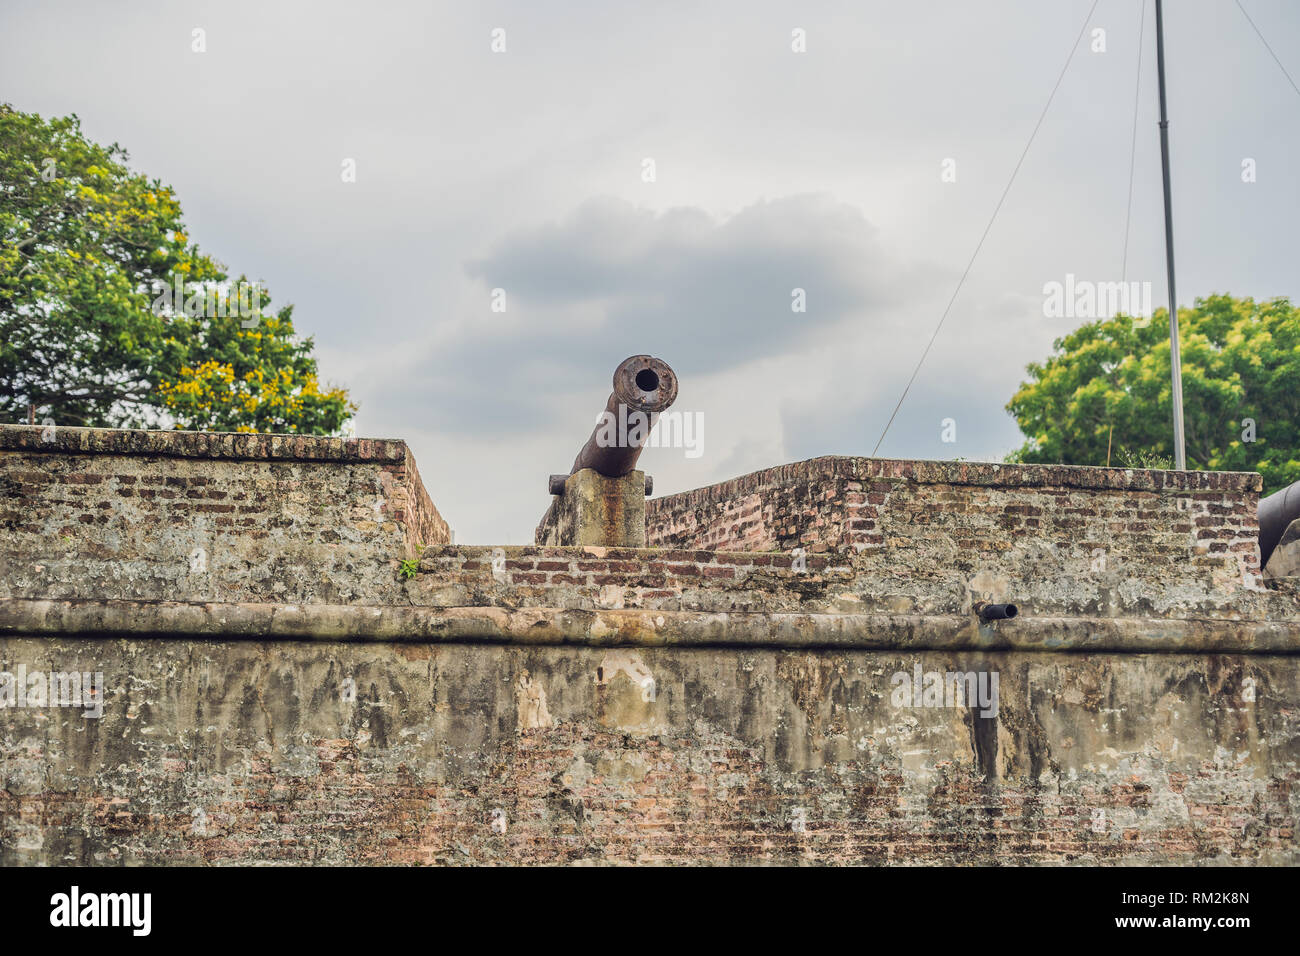 Fort Cornwallis in Georgetown, Penang, is a star fort built by the British East India Company in the late 18th century, it is the largest standing - Stock Image